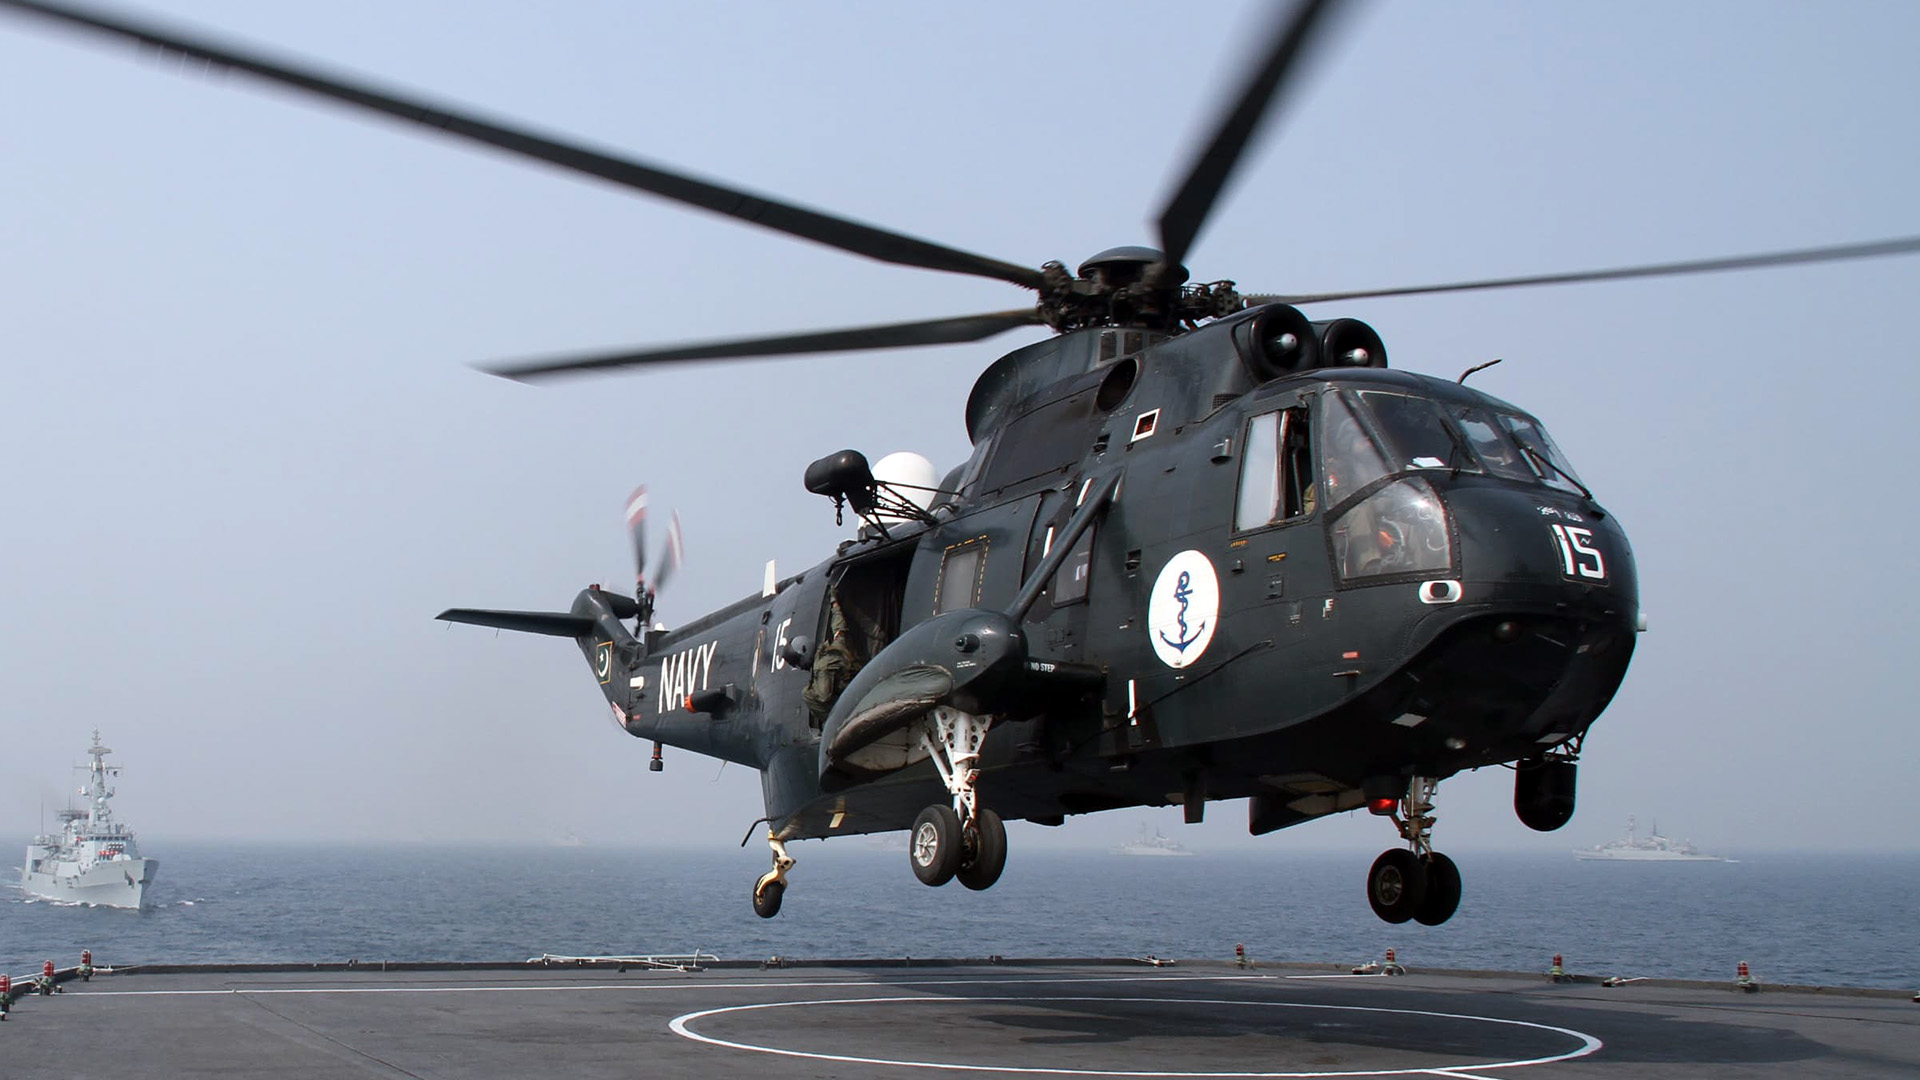 Sea-King-Pakistan-Naval-Air-Arm - Copy.jpg